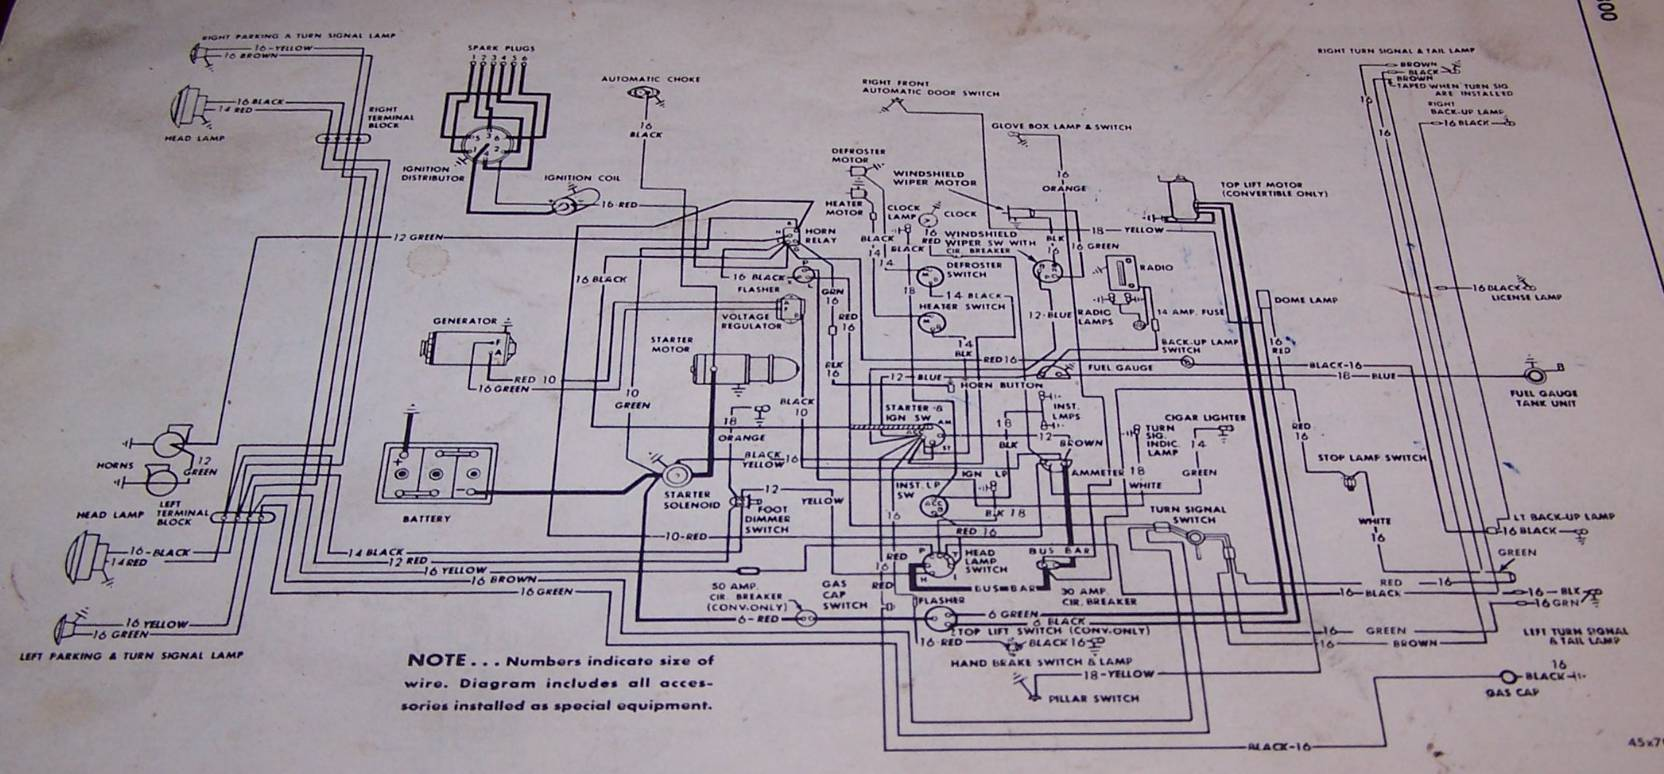 1949 plymouth wiring diagram auto electrical wiring diagram u2022 rh 6weeks co uk